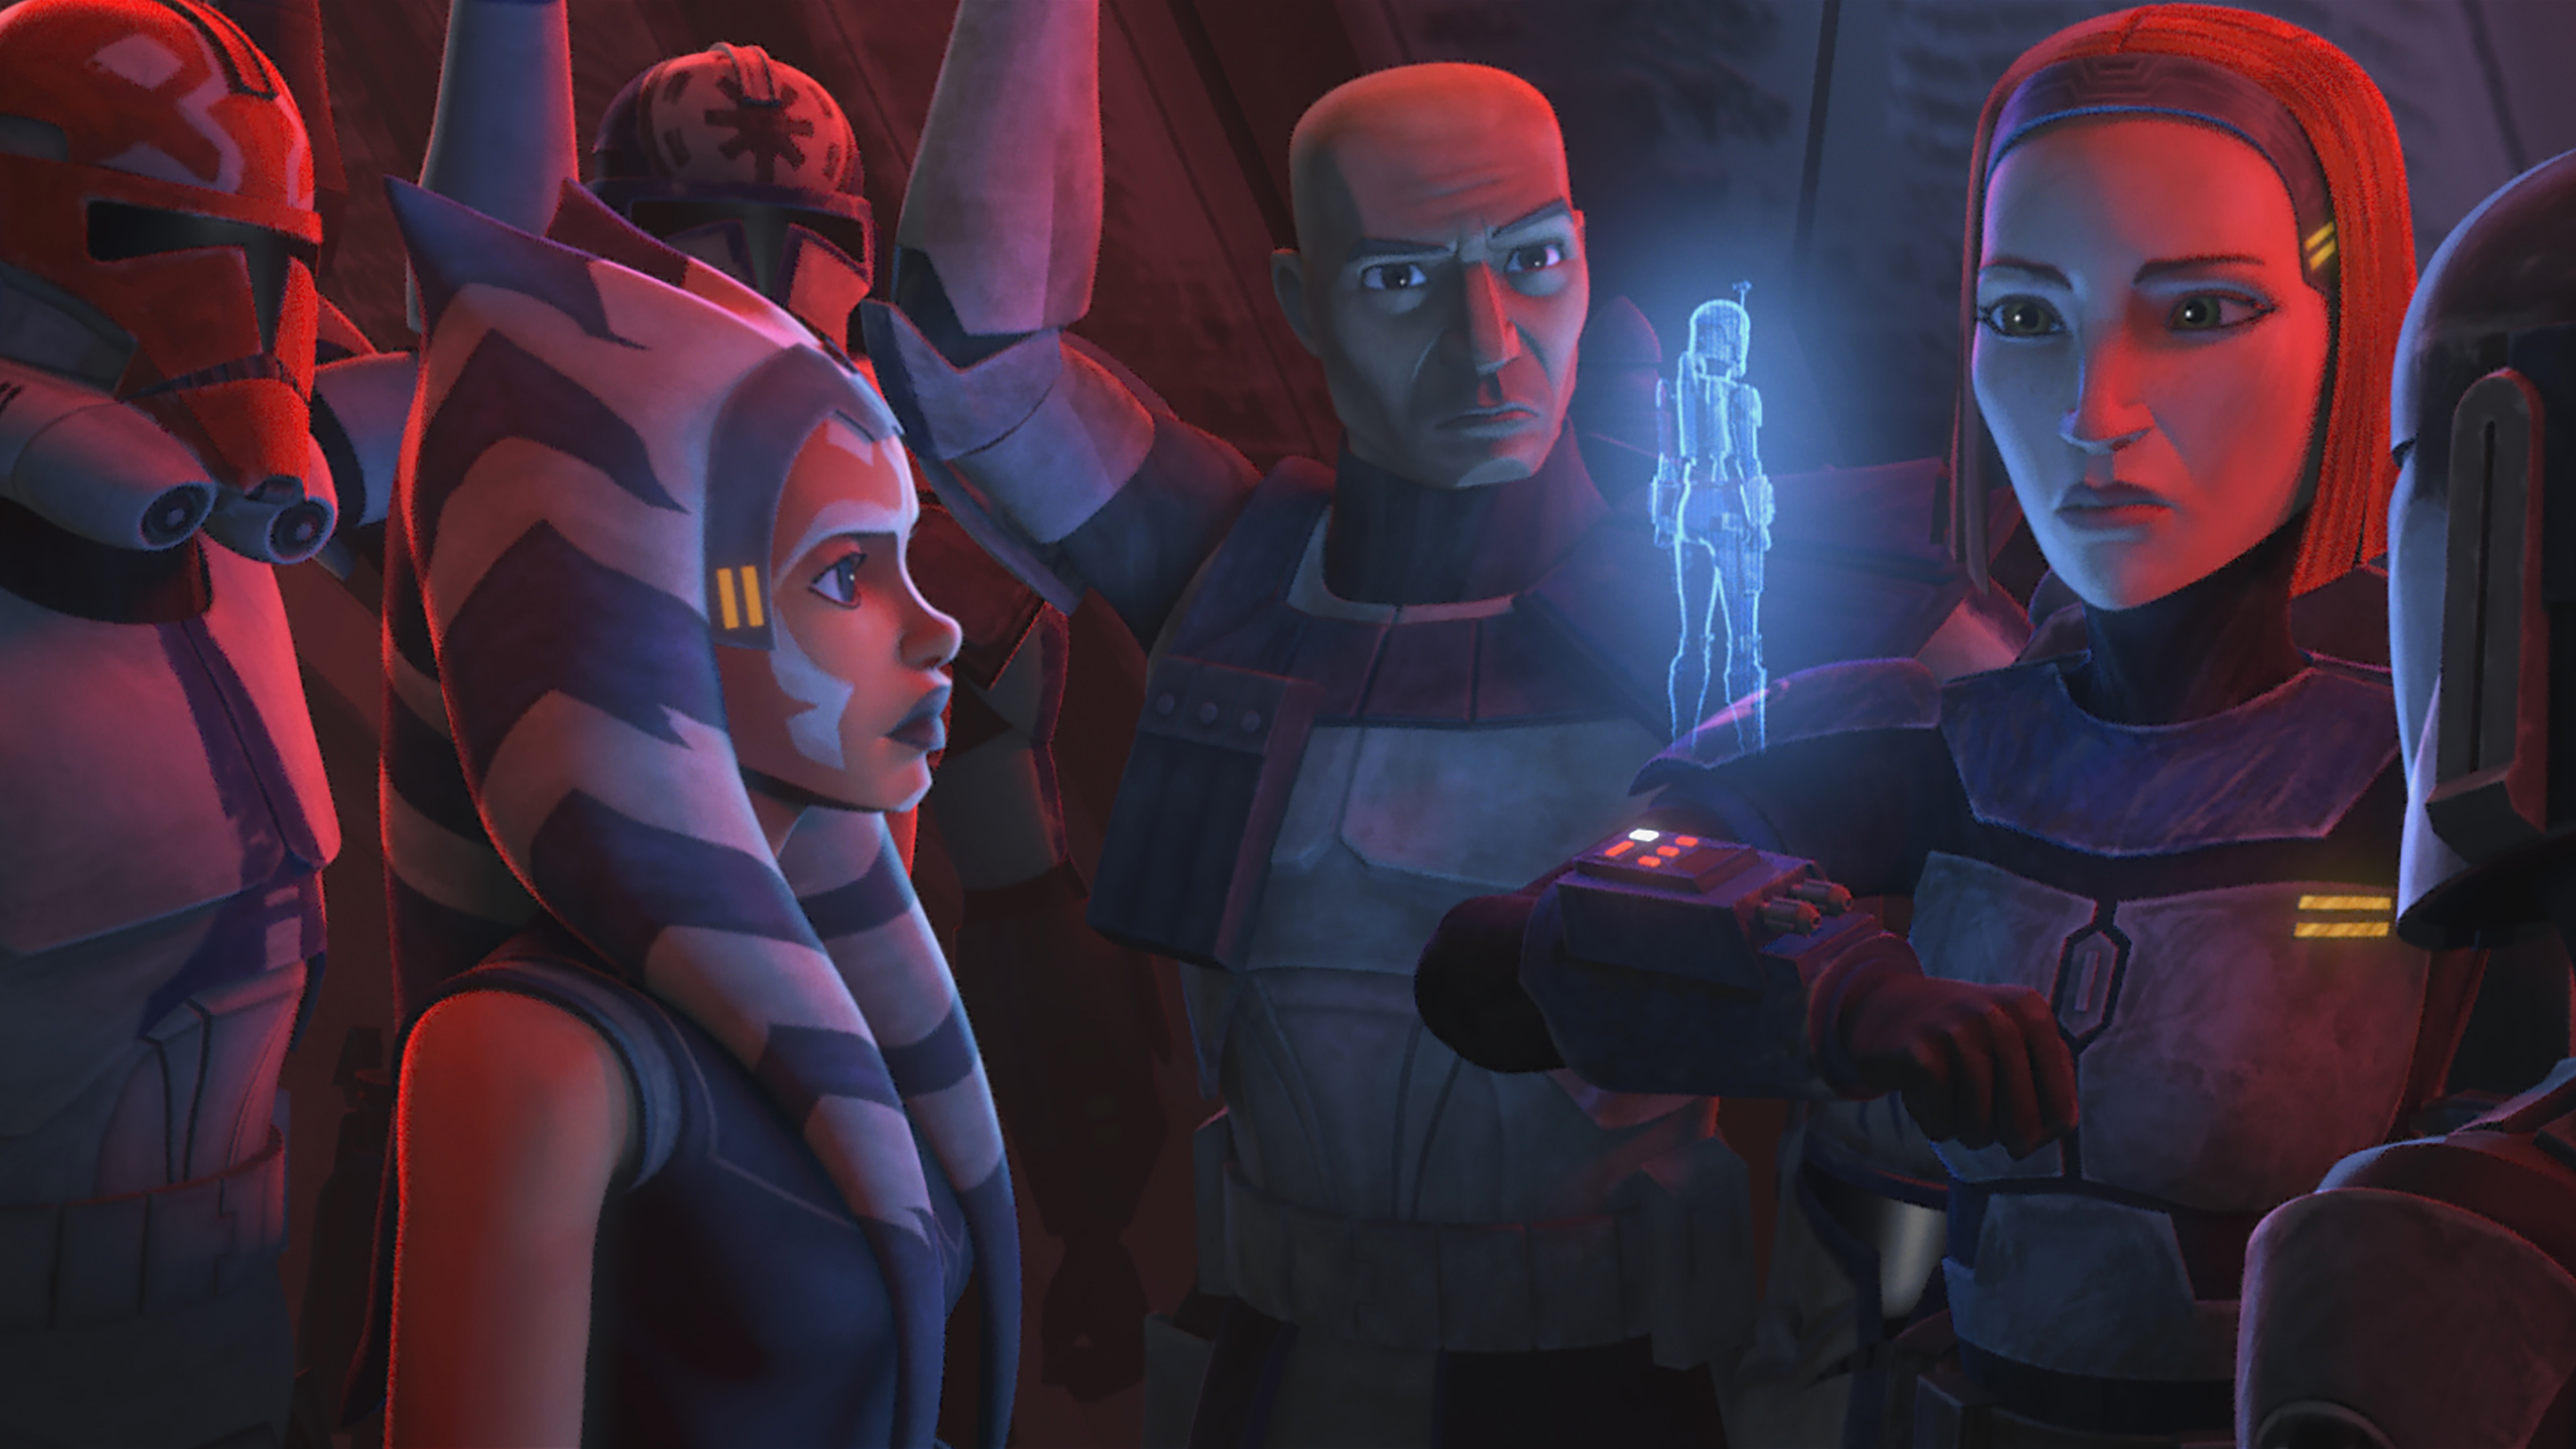 Star Wars The Clone Wars: Old Friends Not Forgotten